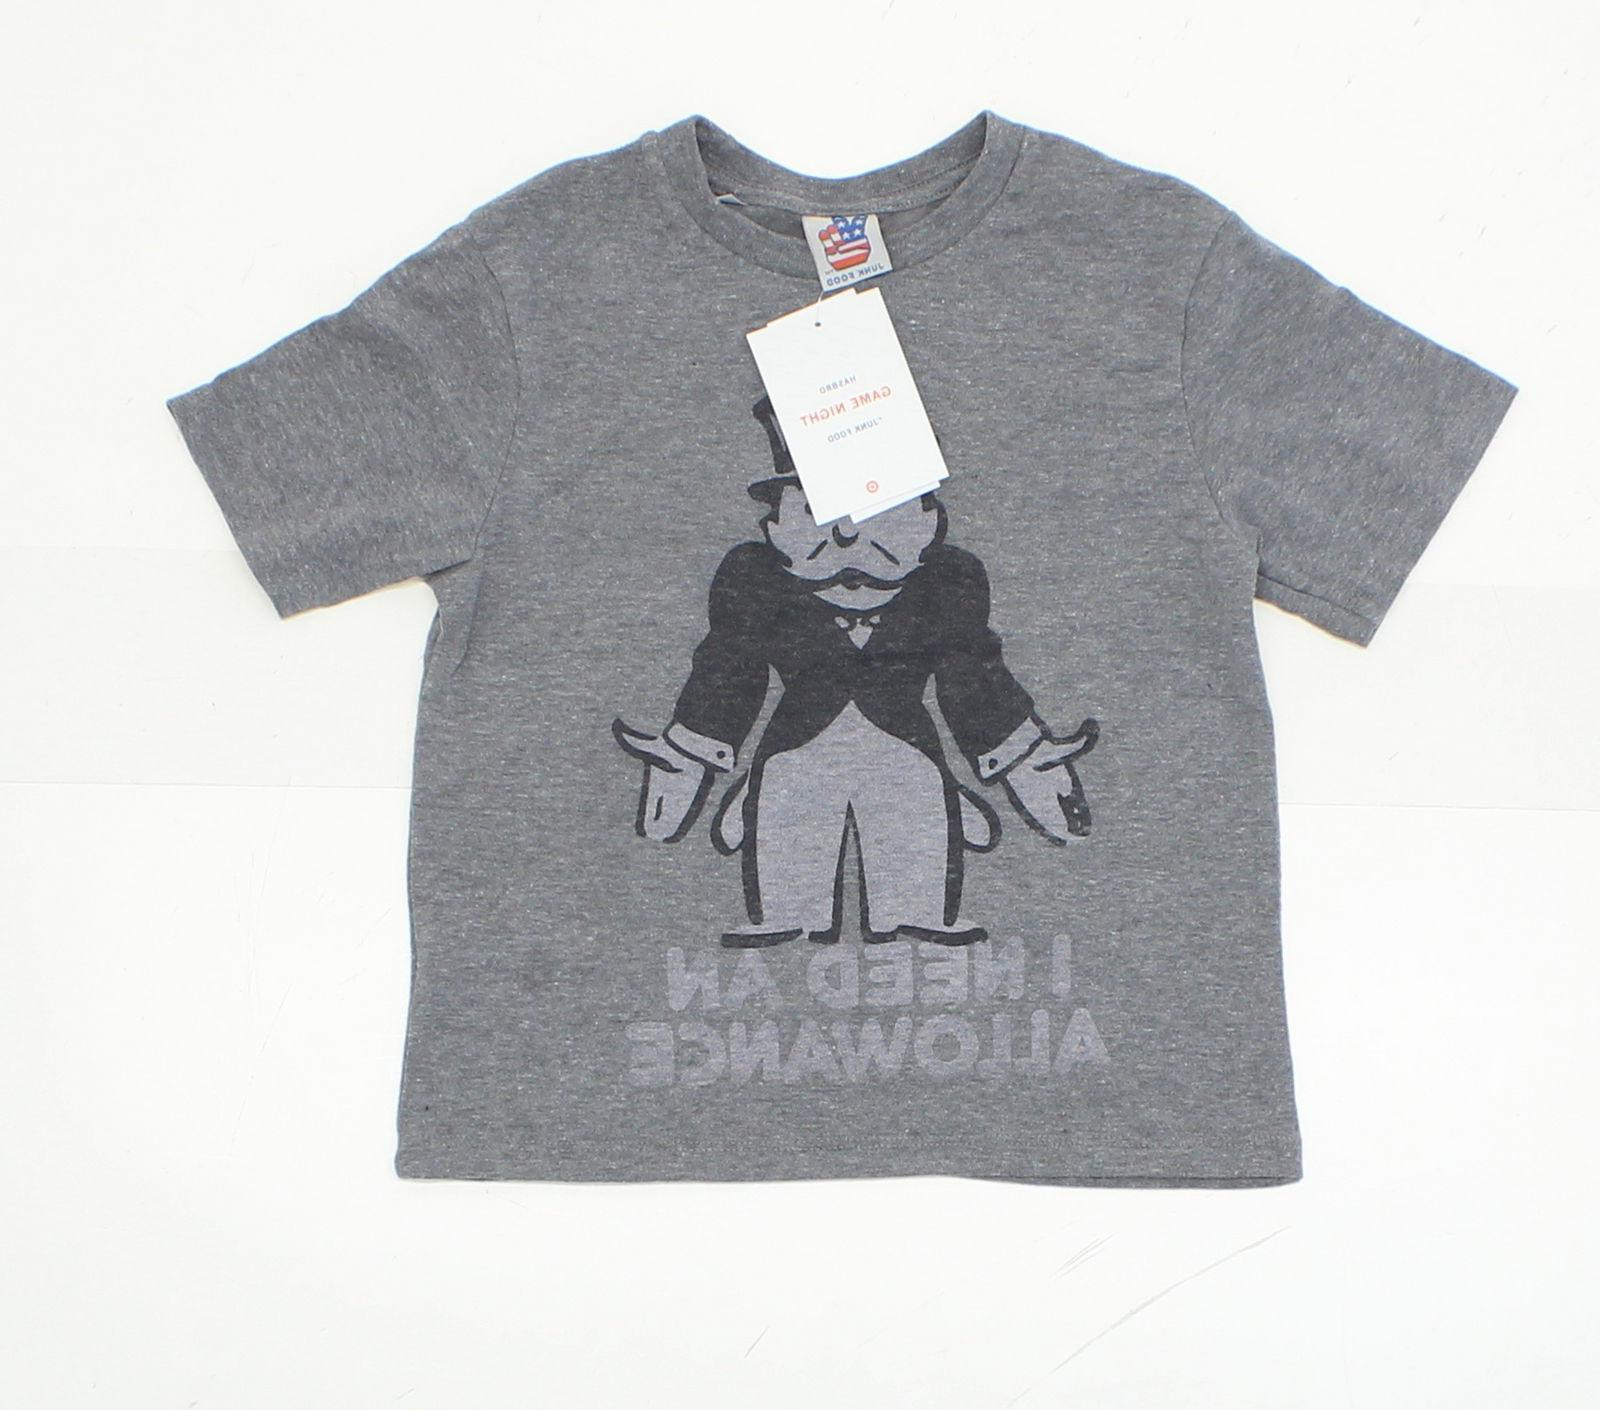 nwt youth monopoly funny graphic t shirt